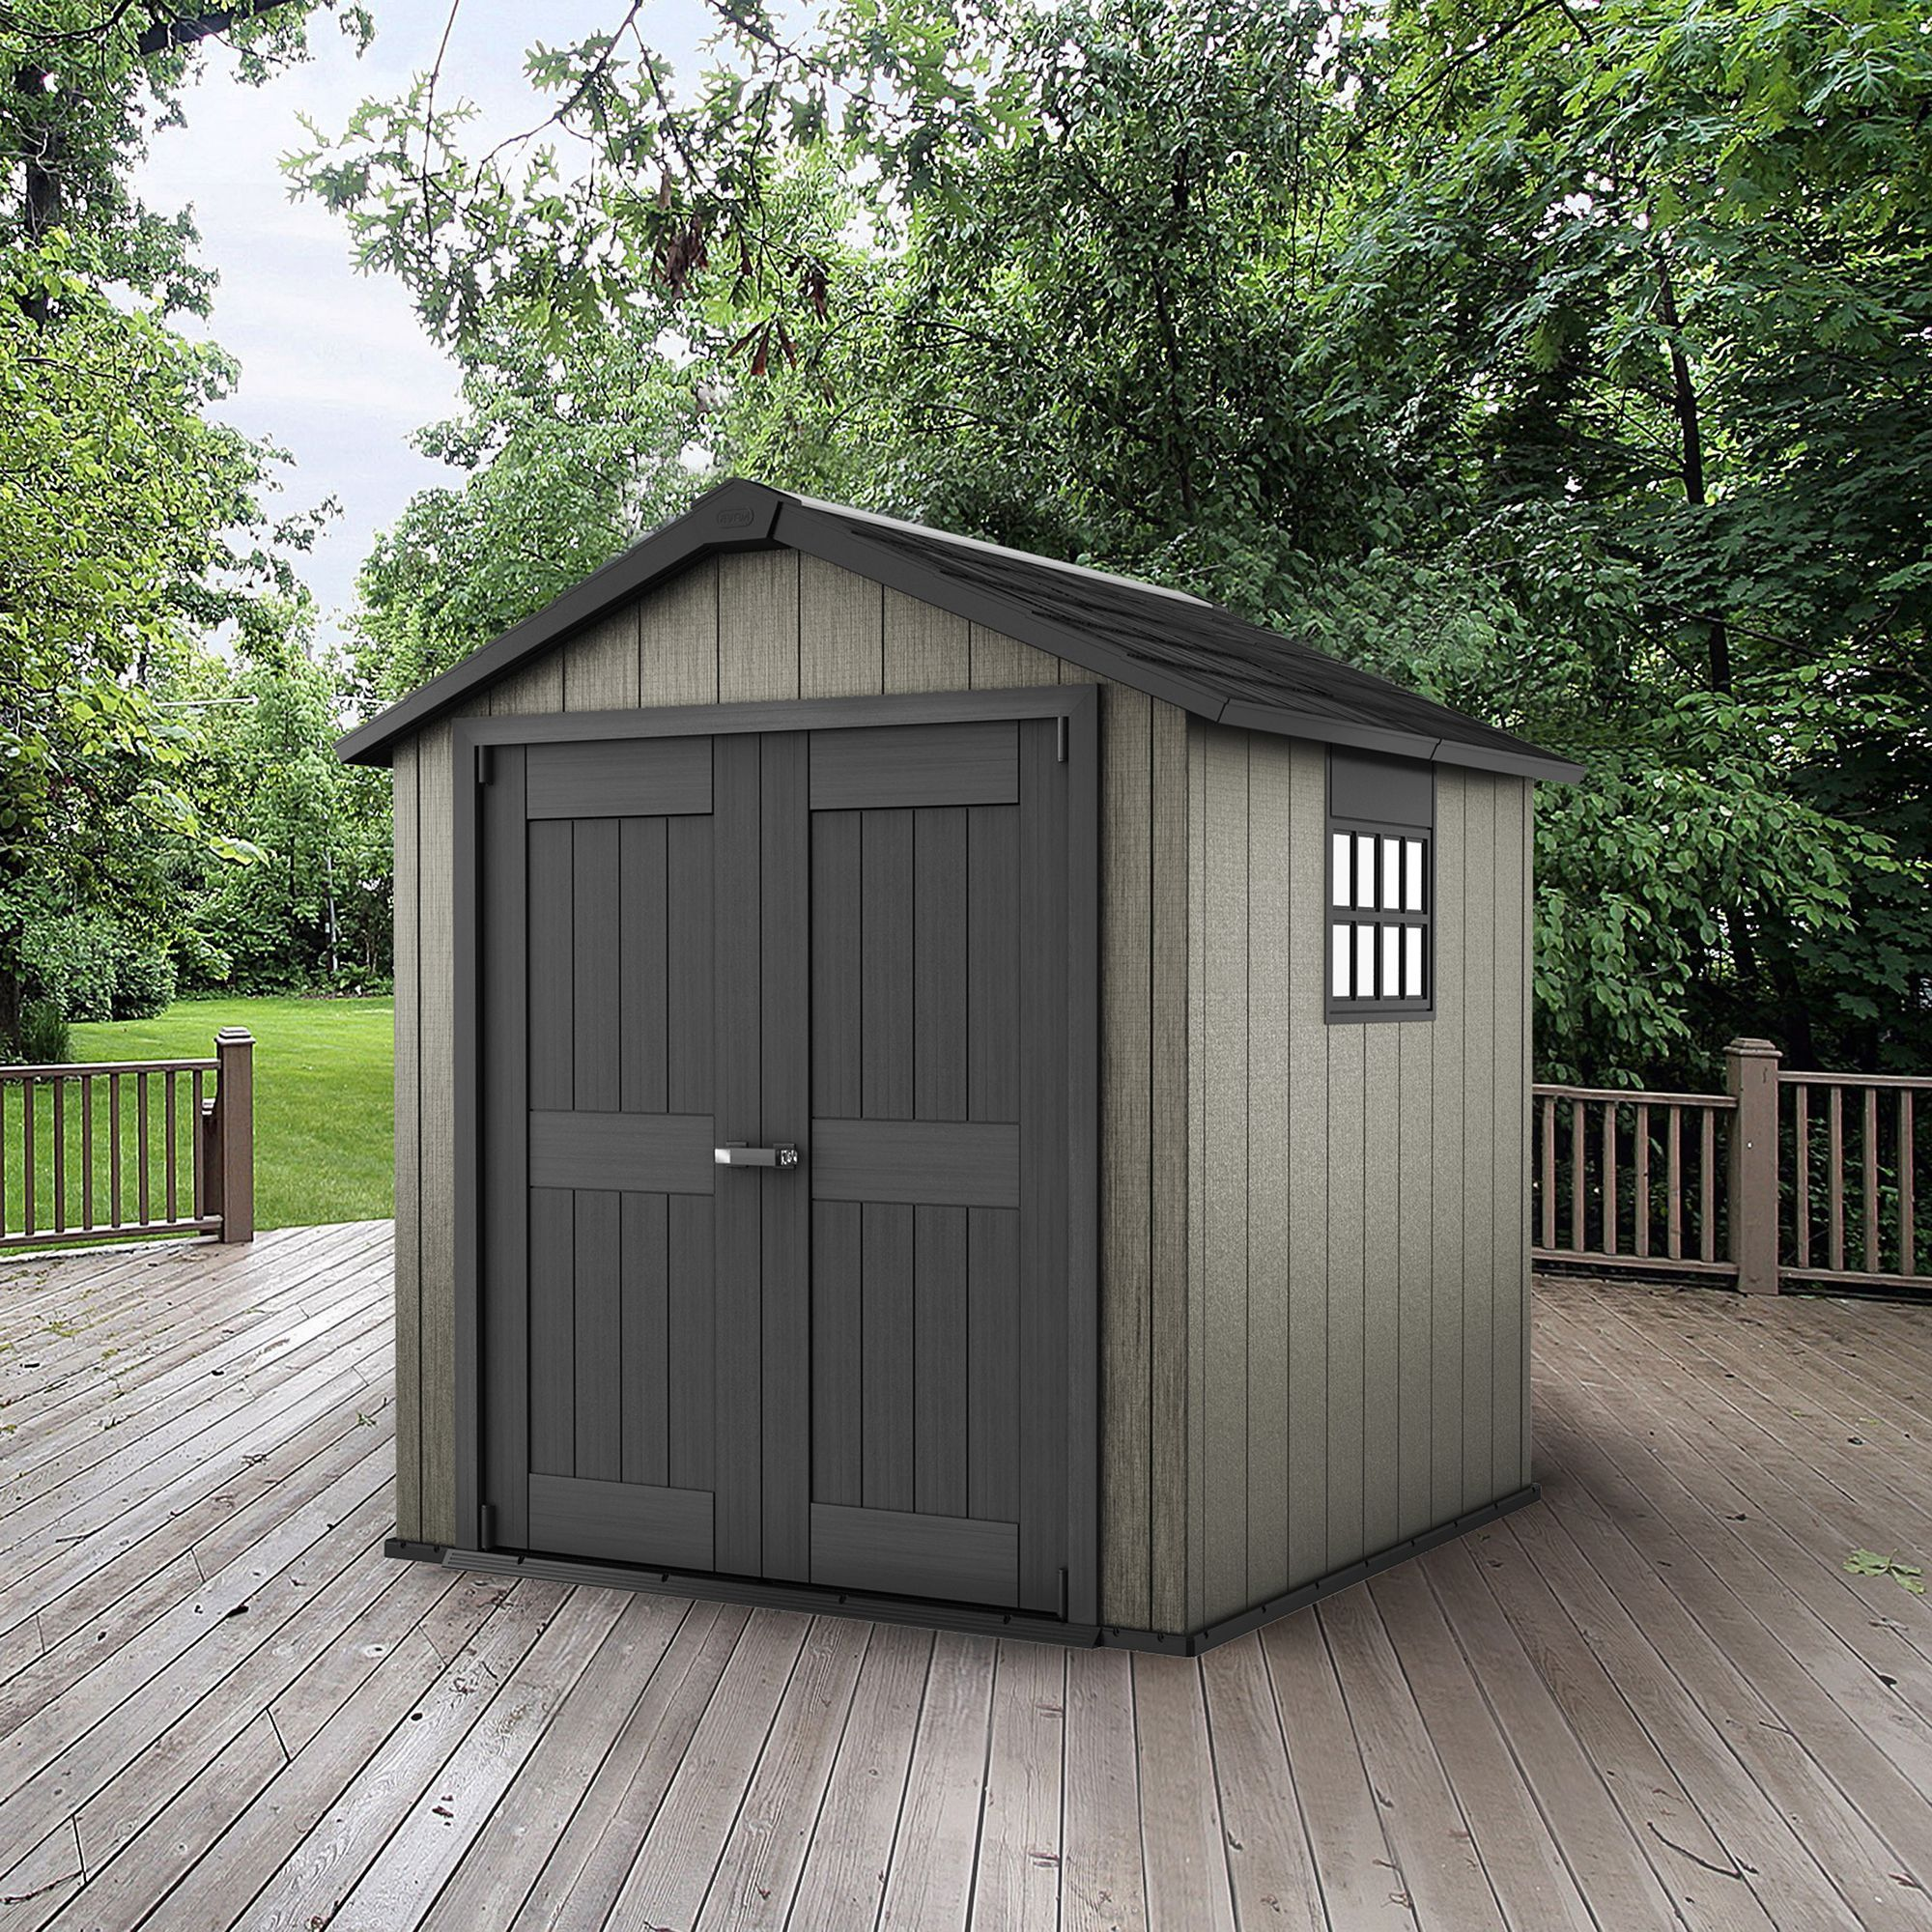 depot storage the coop part from sheds watch shed clearance youtube kit home building chicken